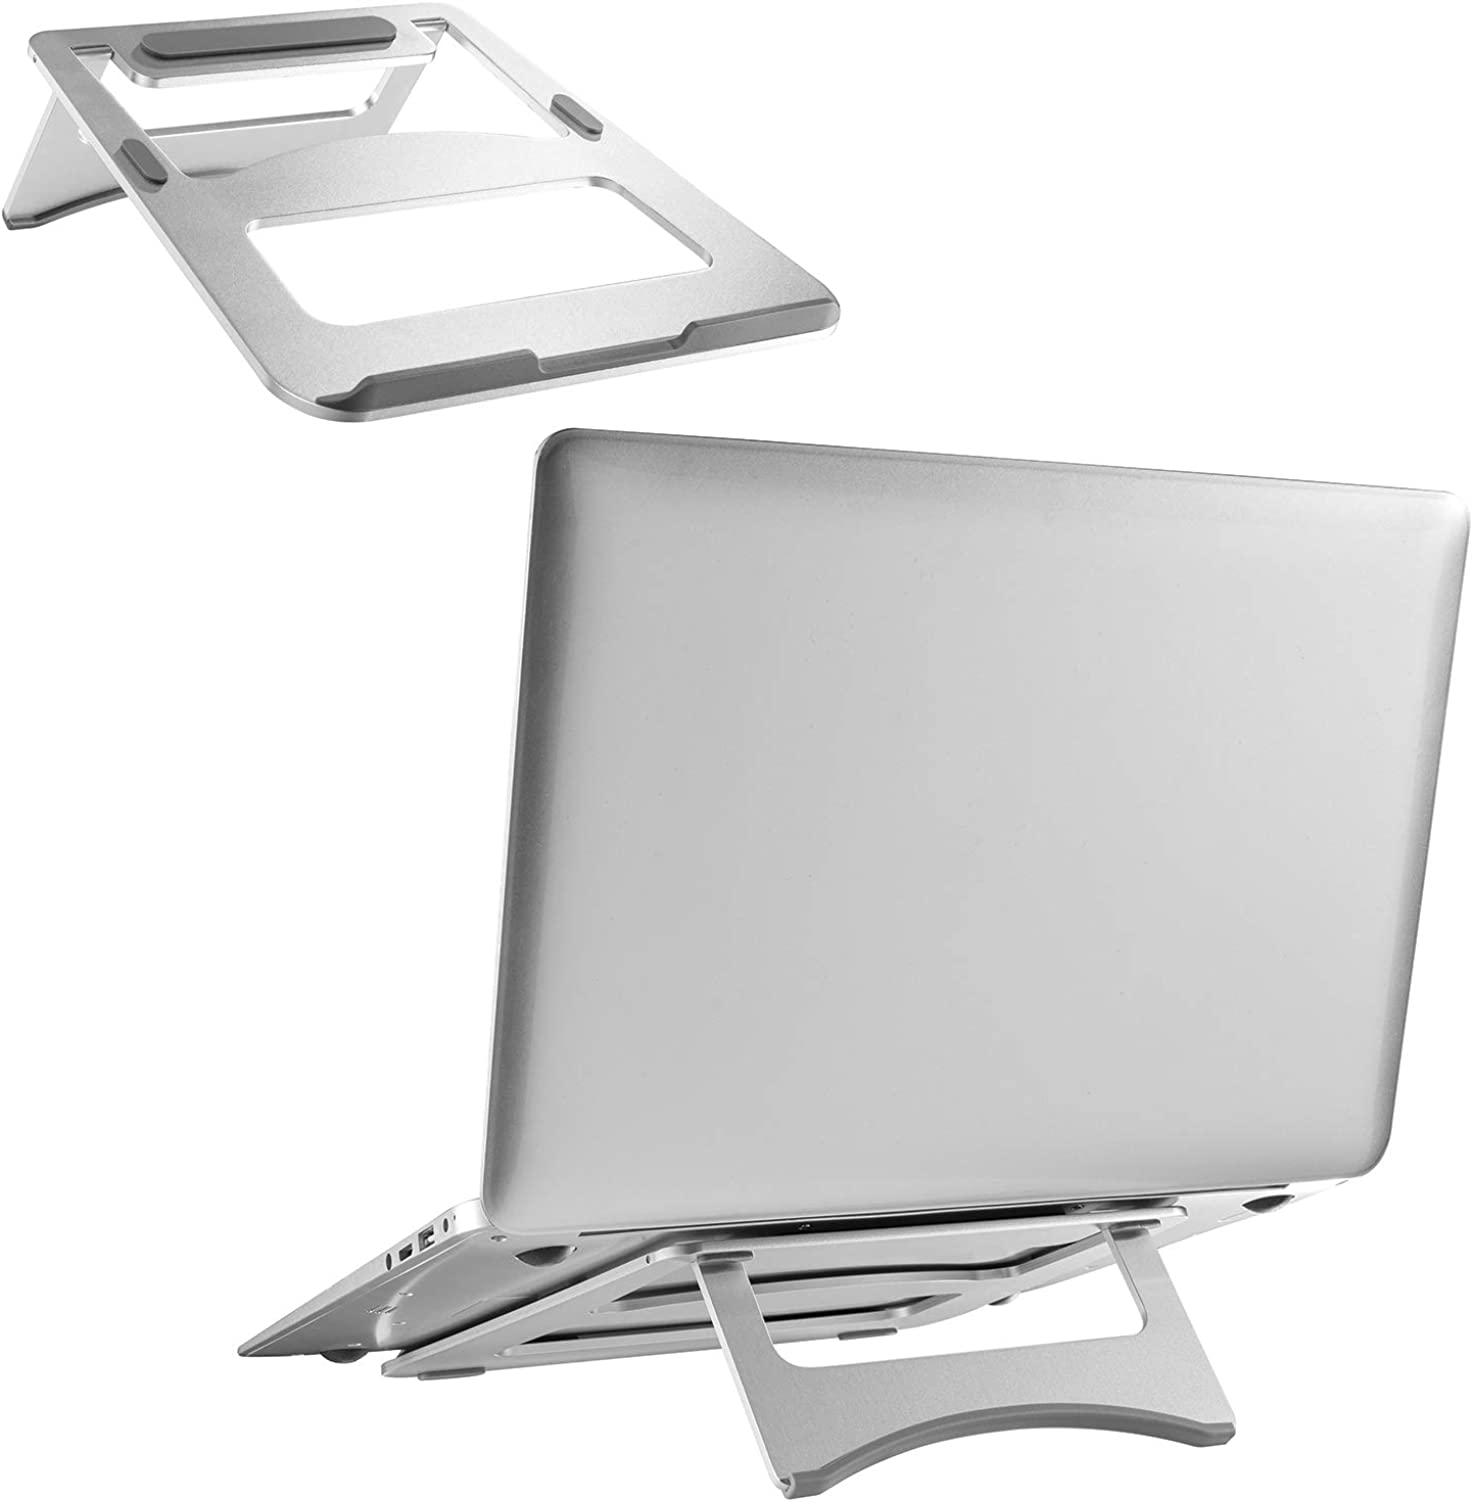 WALI Aluminum Laptop Riser Stand Universal Portable Foldable for up to 15 inch Notebook, MacBook, iPad, Tablet (FLT001), Silver